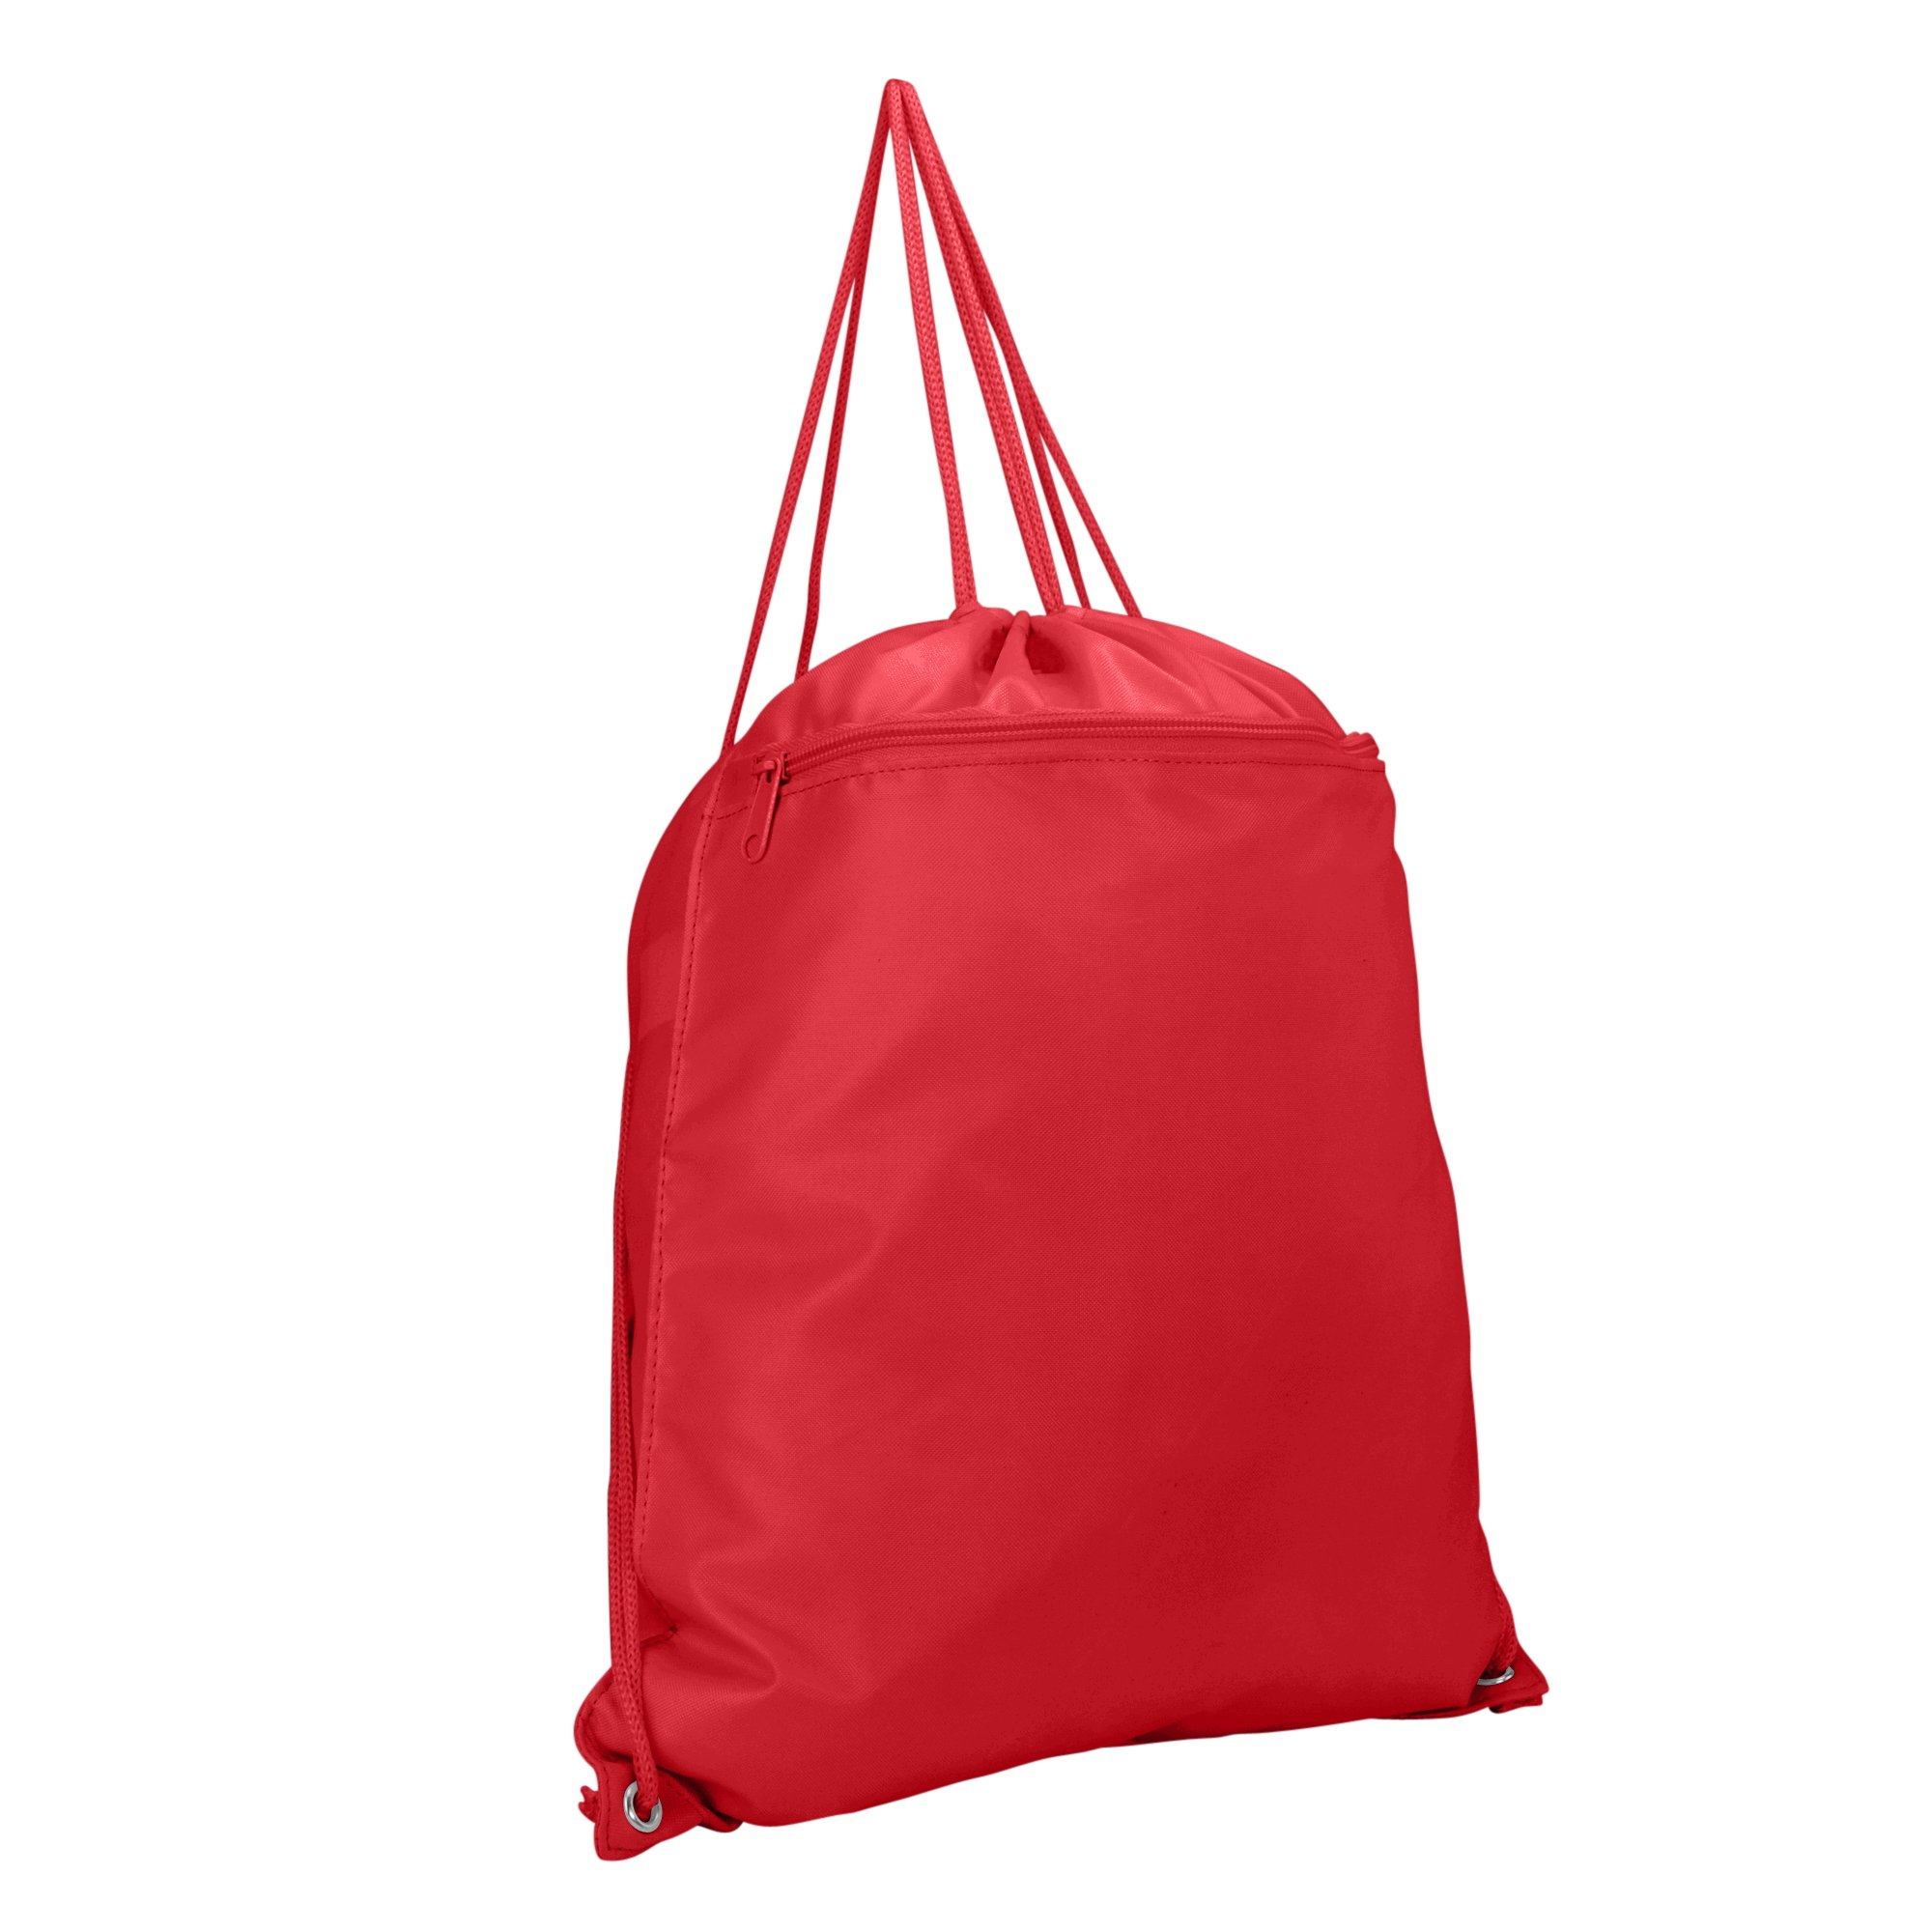 DALIX Sock Pack Drawstring Backpack Bag Sack in Red